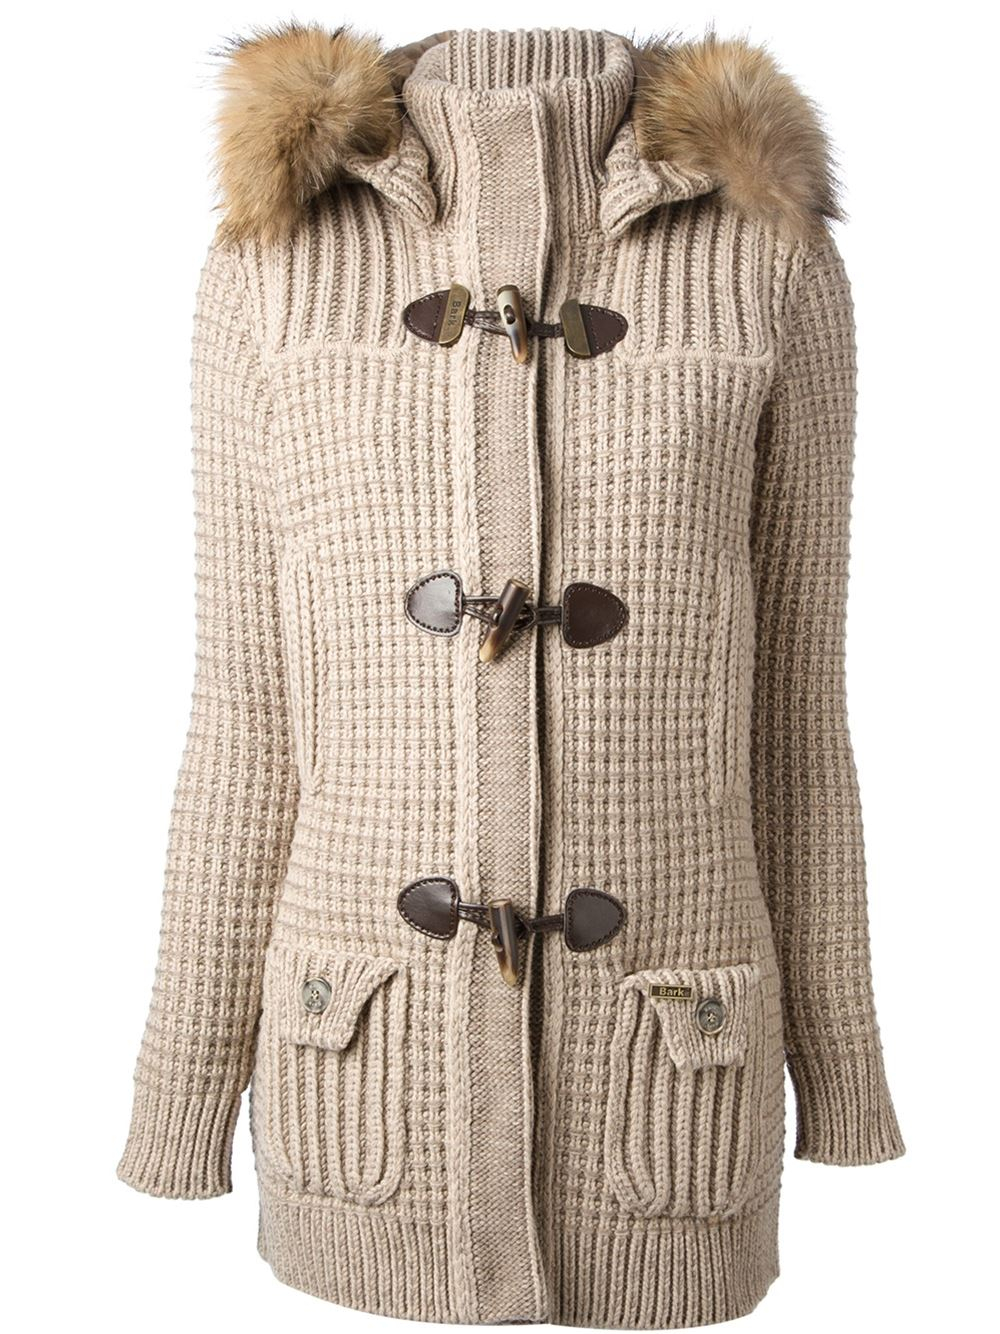 Bark Knitted Duffle Coat in Natural | Lyst